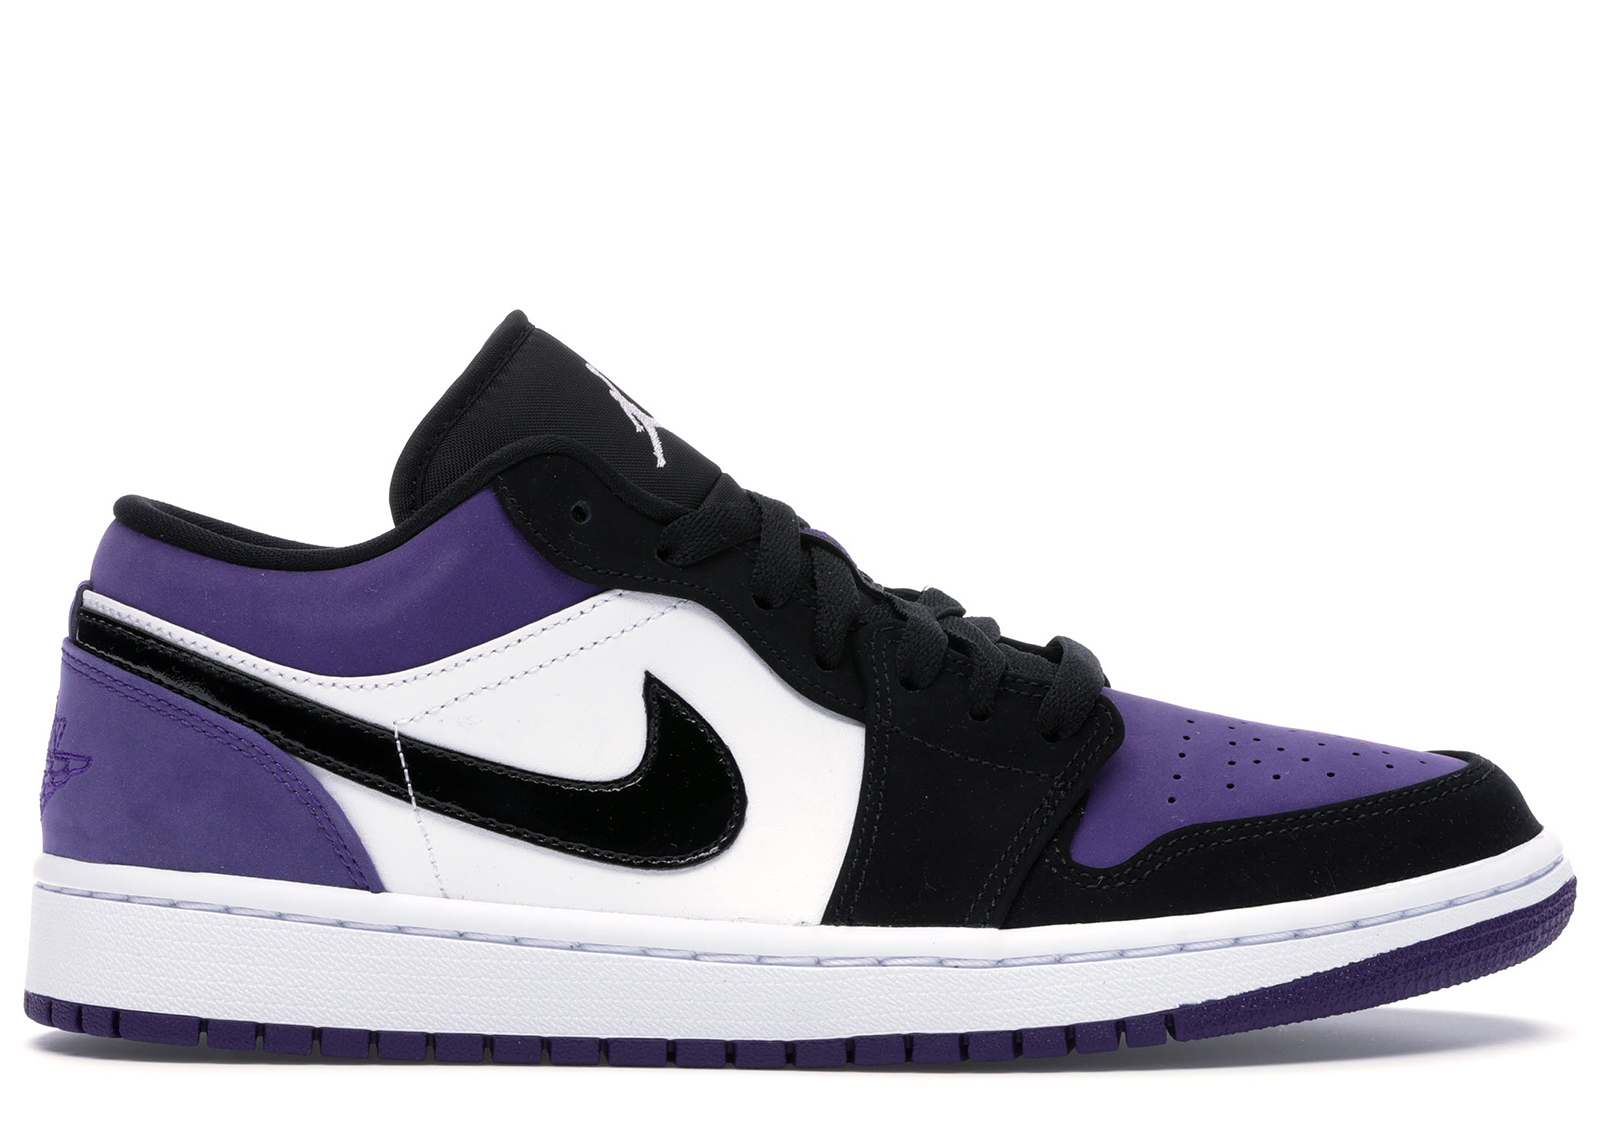 air jordan 1 court purple 2020 stockx